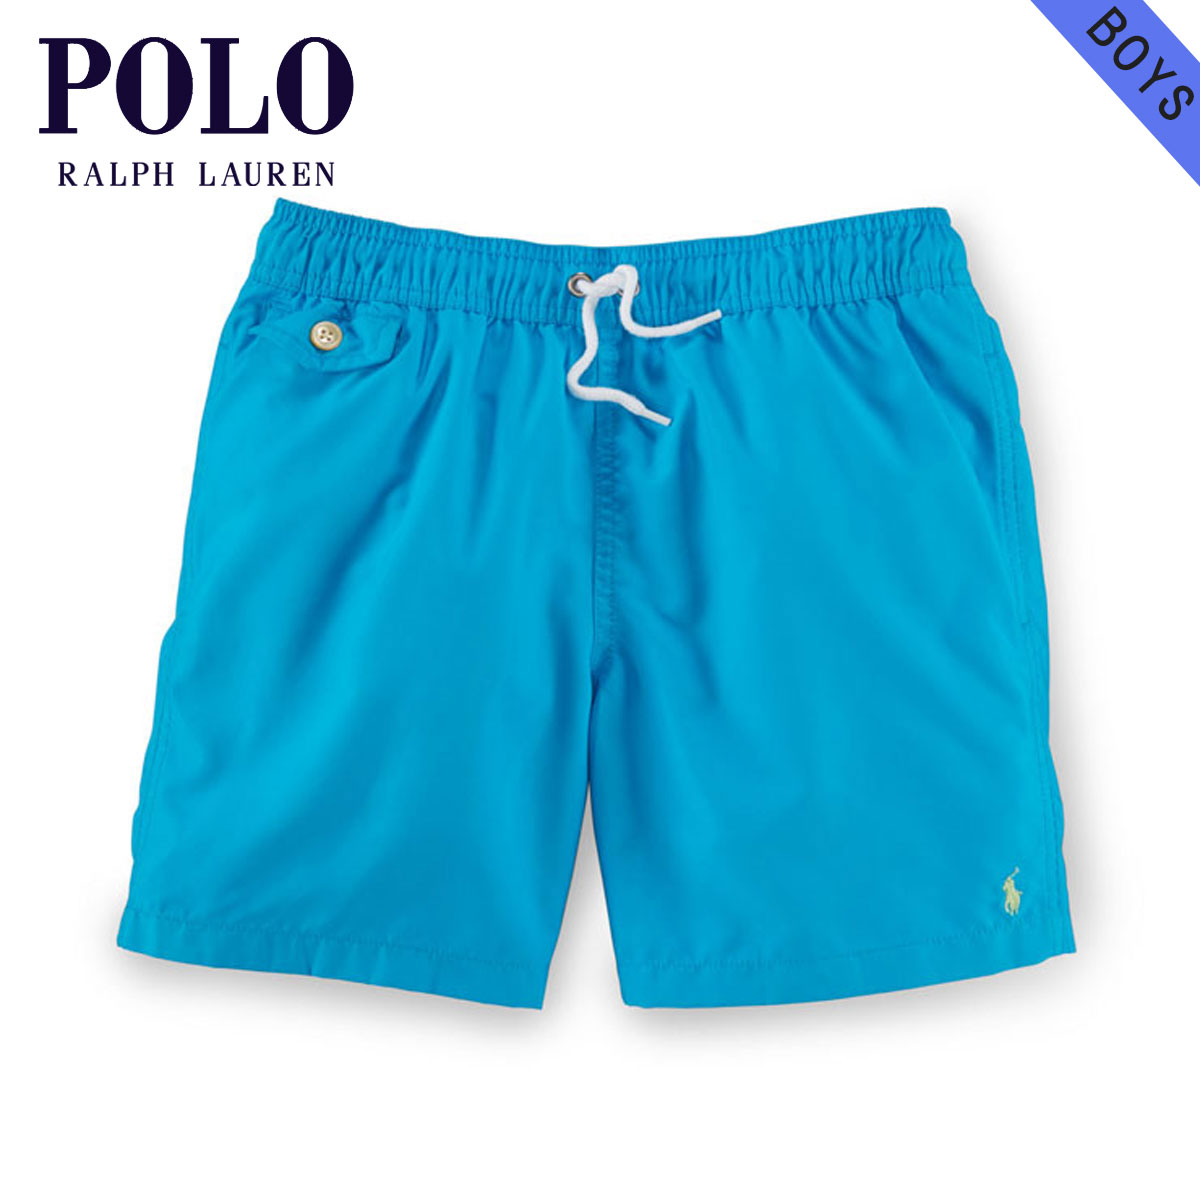 online retailer 47a06 142a2 Polo Ralph Lauren kids swimsuit Boys children's clothes regular article  POLO RALPH LAUREN CHILDREN swimming underwear TRAVELER SWIM TRUNK 71049136  ...